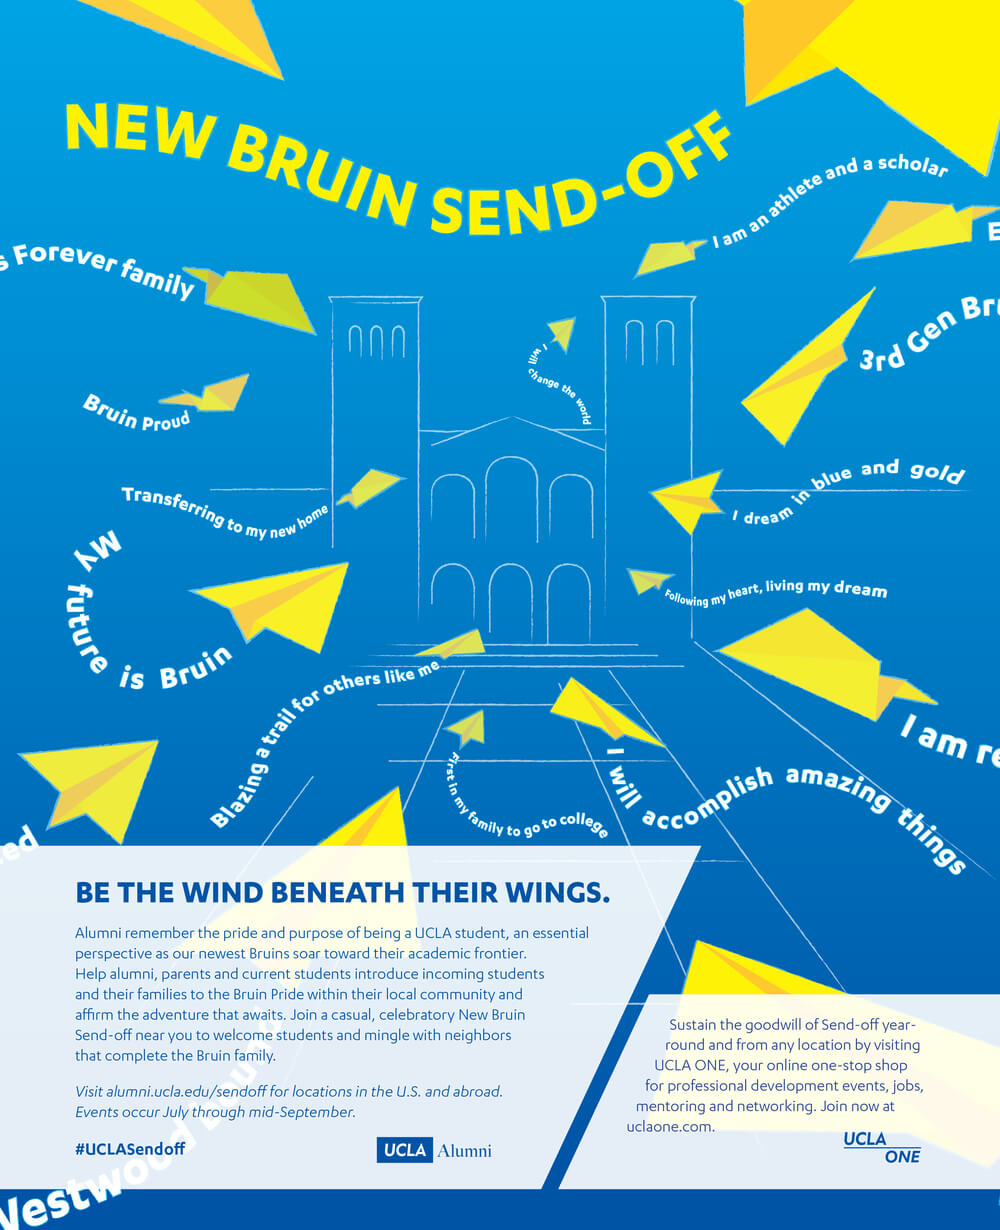 Magazine ad inviting alumni to participate in their local New Bruin Send-off–a party for accepted students before they leave their hometowns.